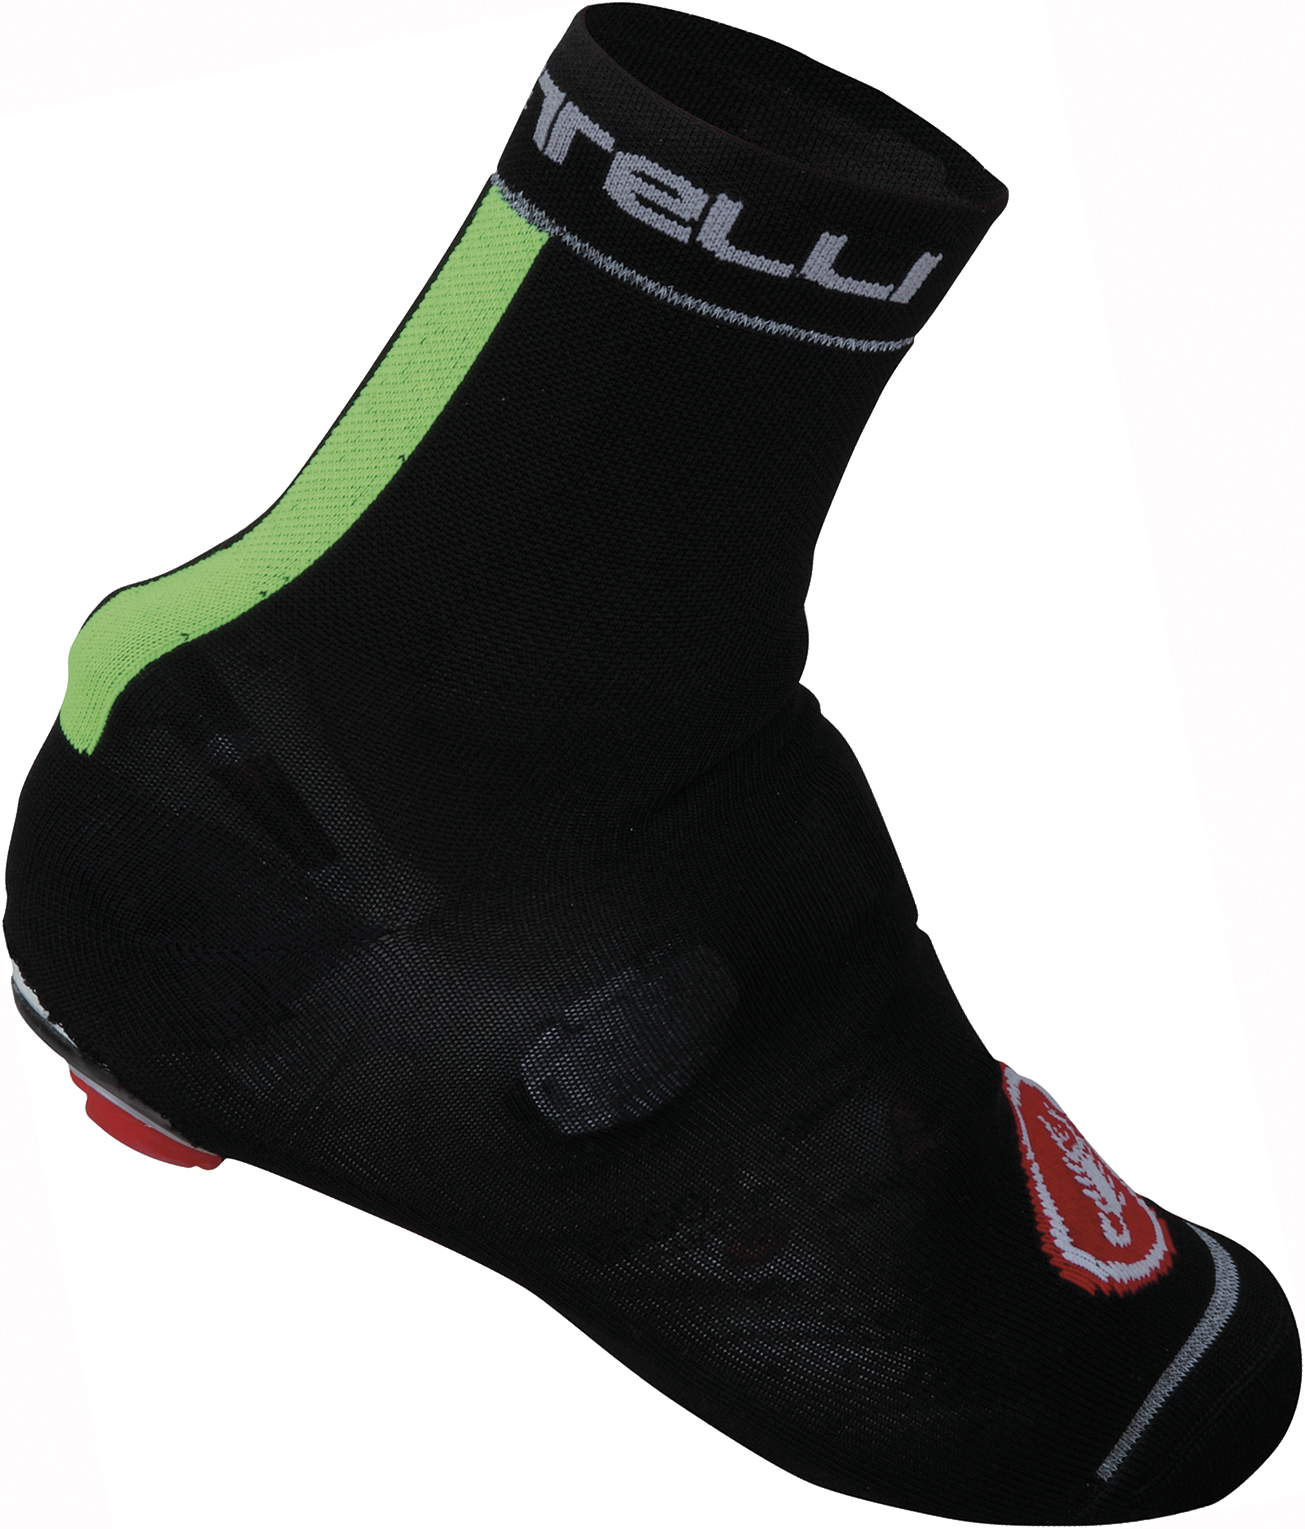 CASTELLI BELGIAN BOOTIE 4 BLACK/YELLOW FLUO | shoecovers_clothes